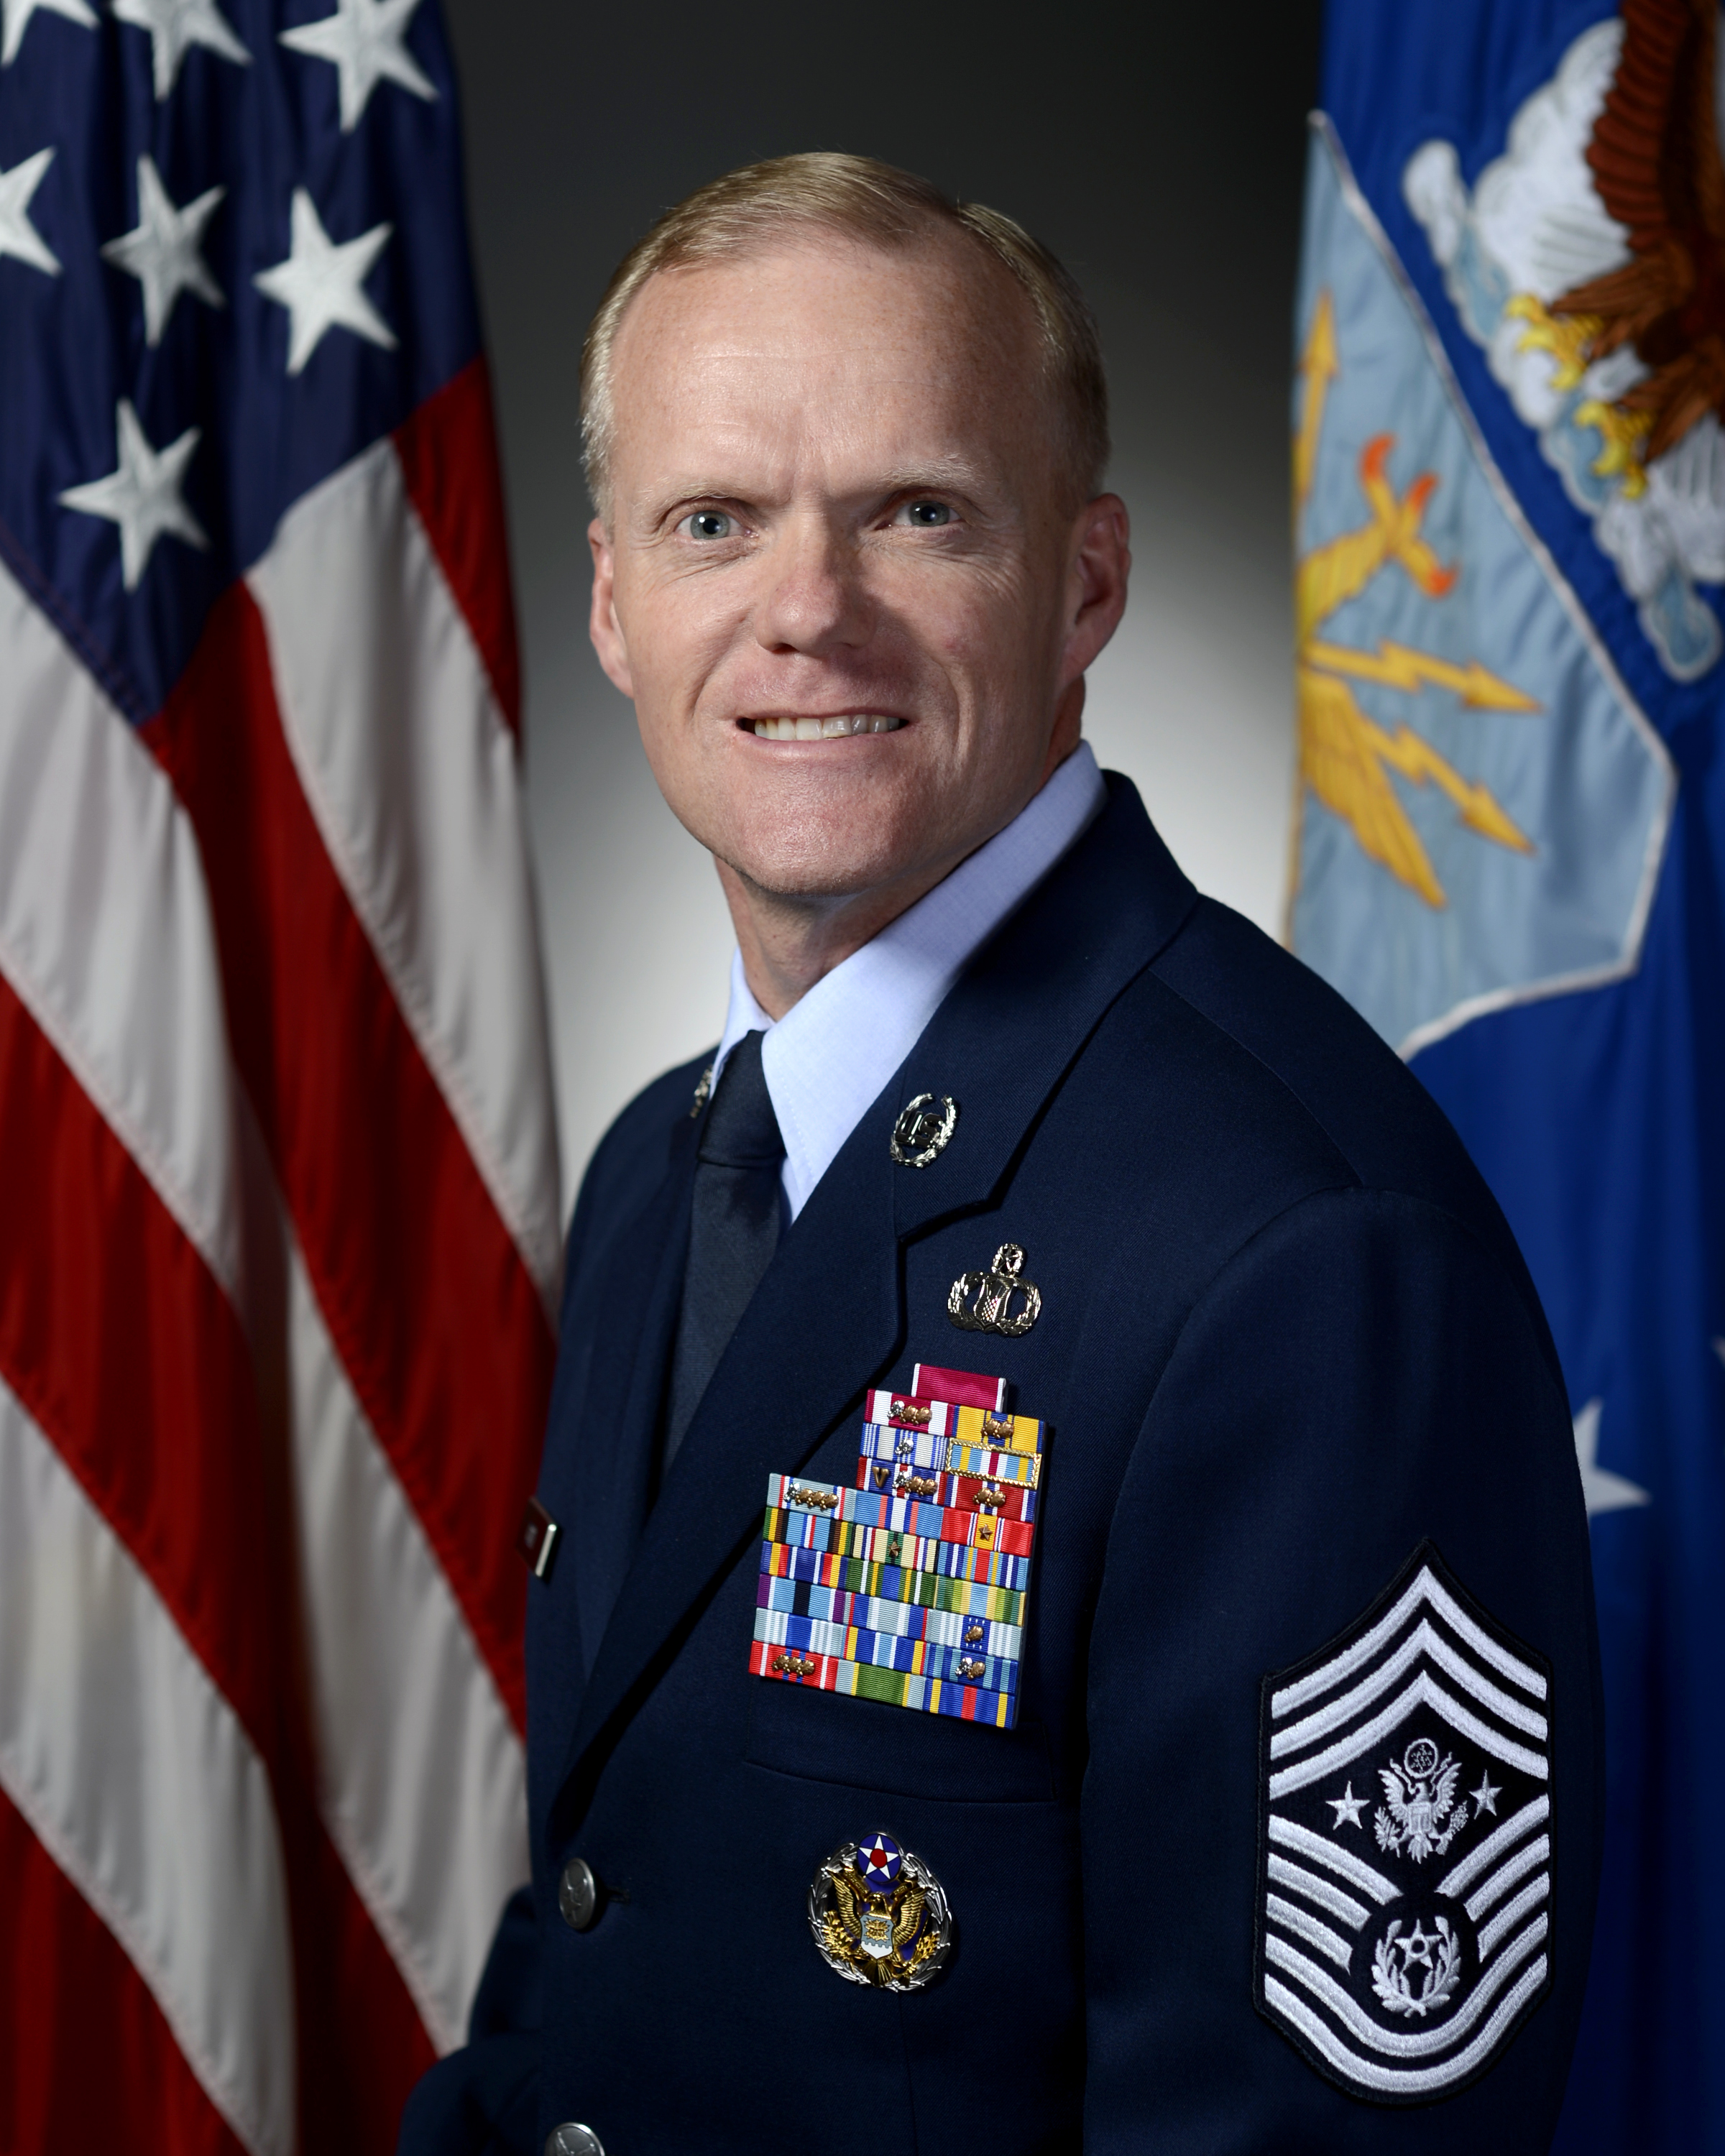 What Is The Air Force >> Chief Master Sergeant Of The Air Force James A Cody U S Air